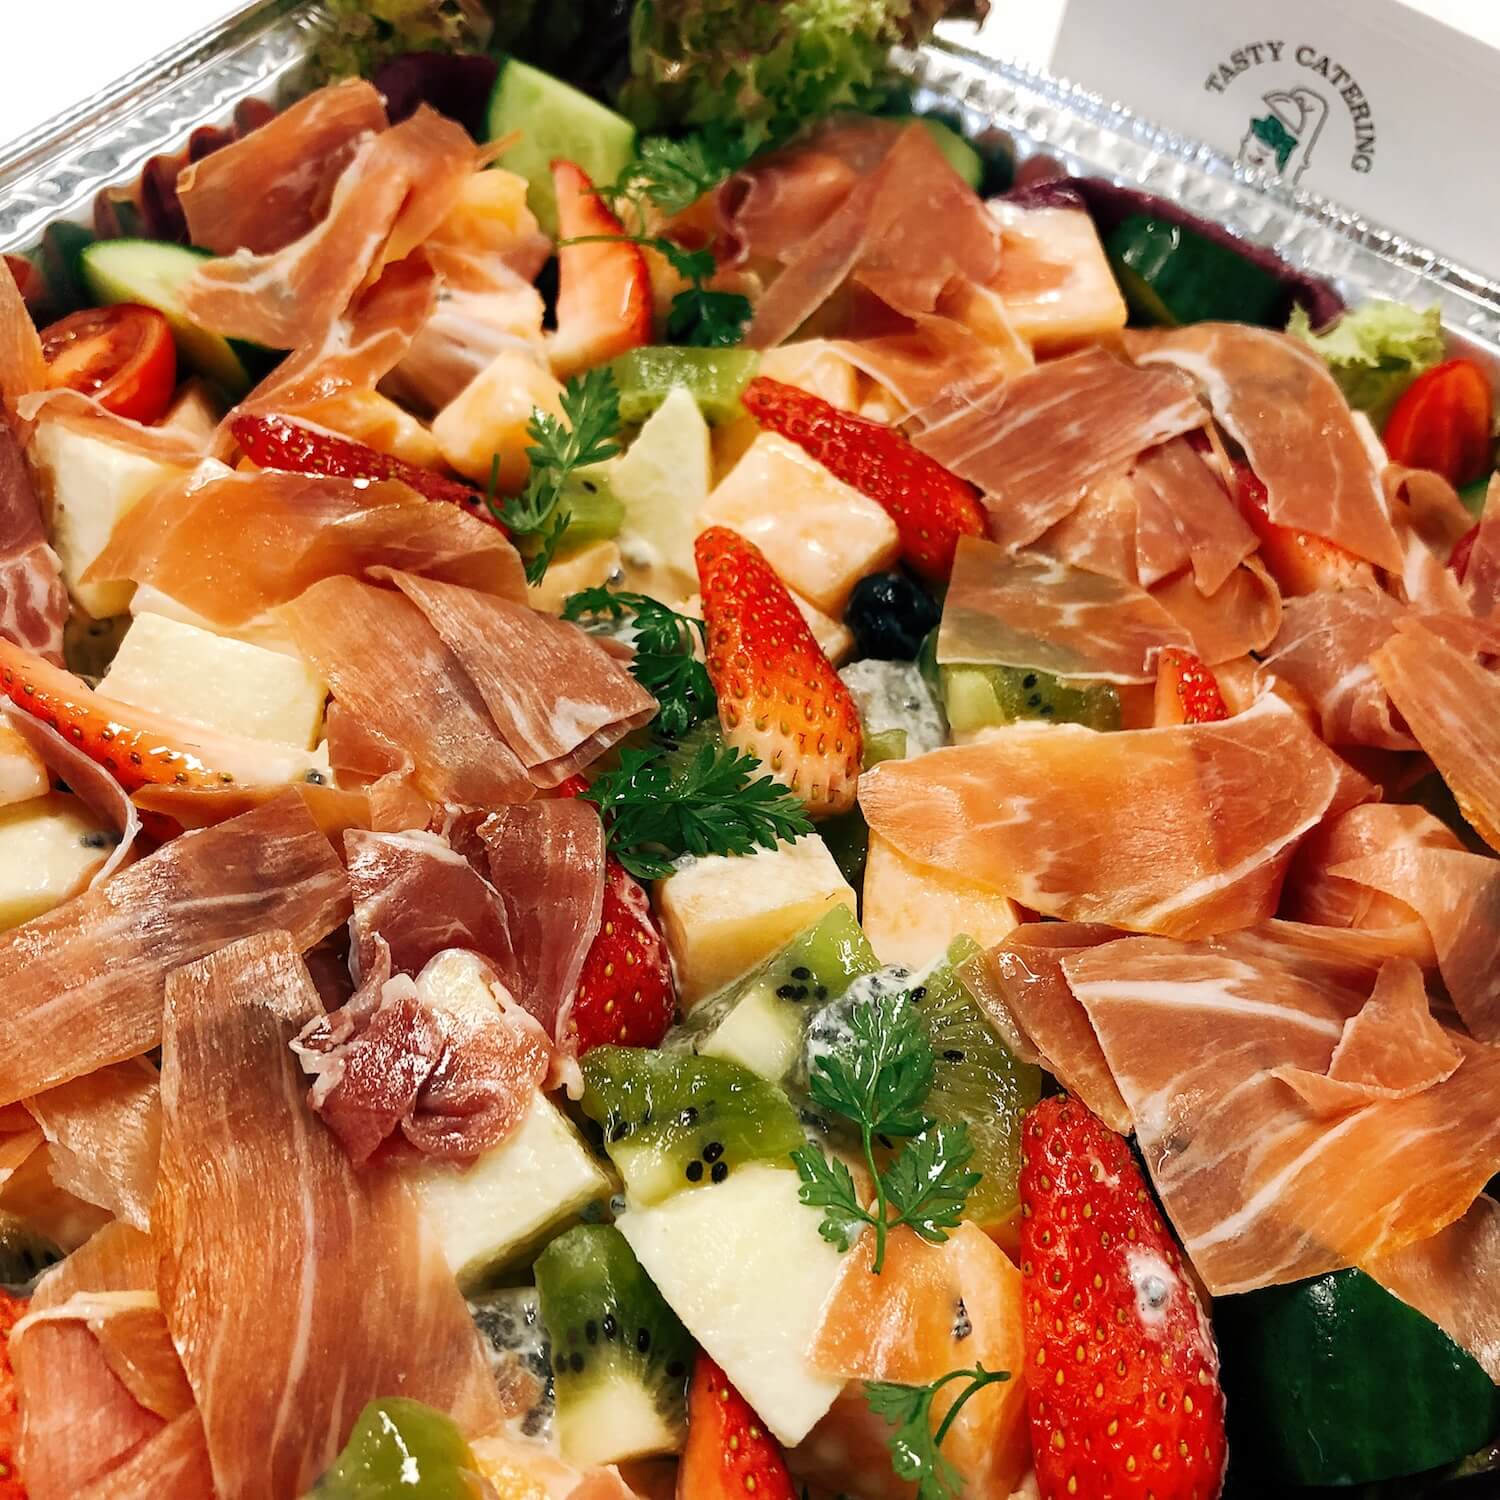 鮮果沙律伴風乾火腿 Assorted Fresh Fruit Salad with Parma Ham